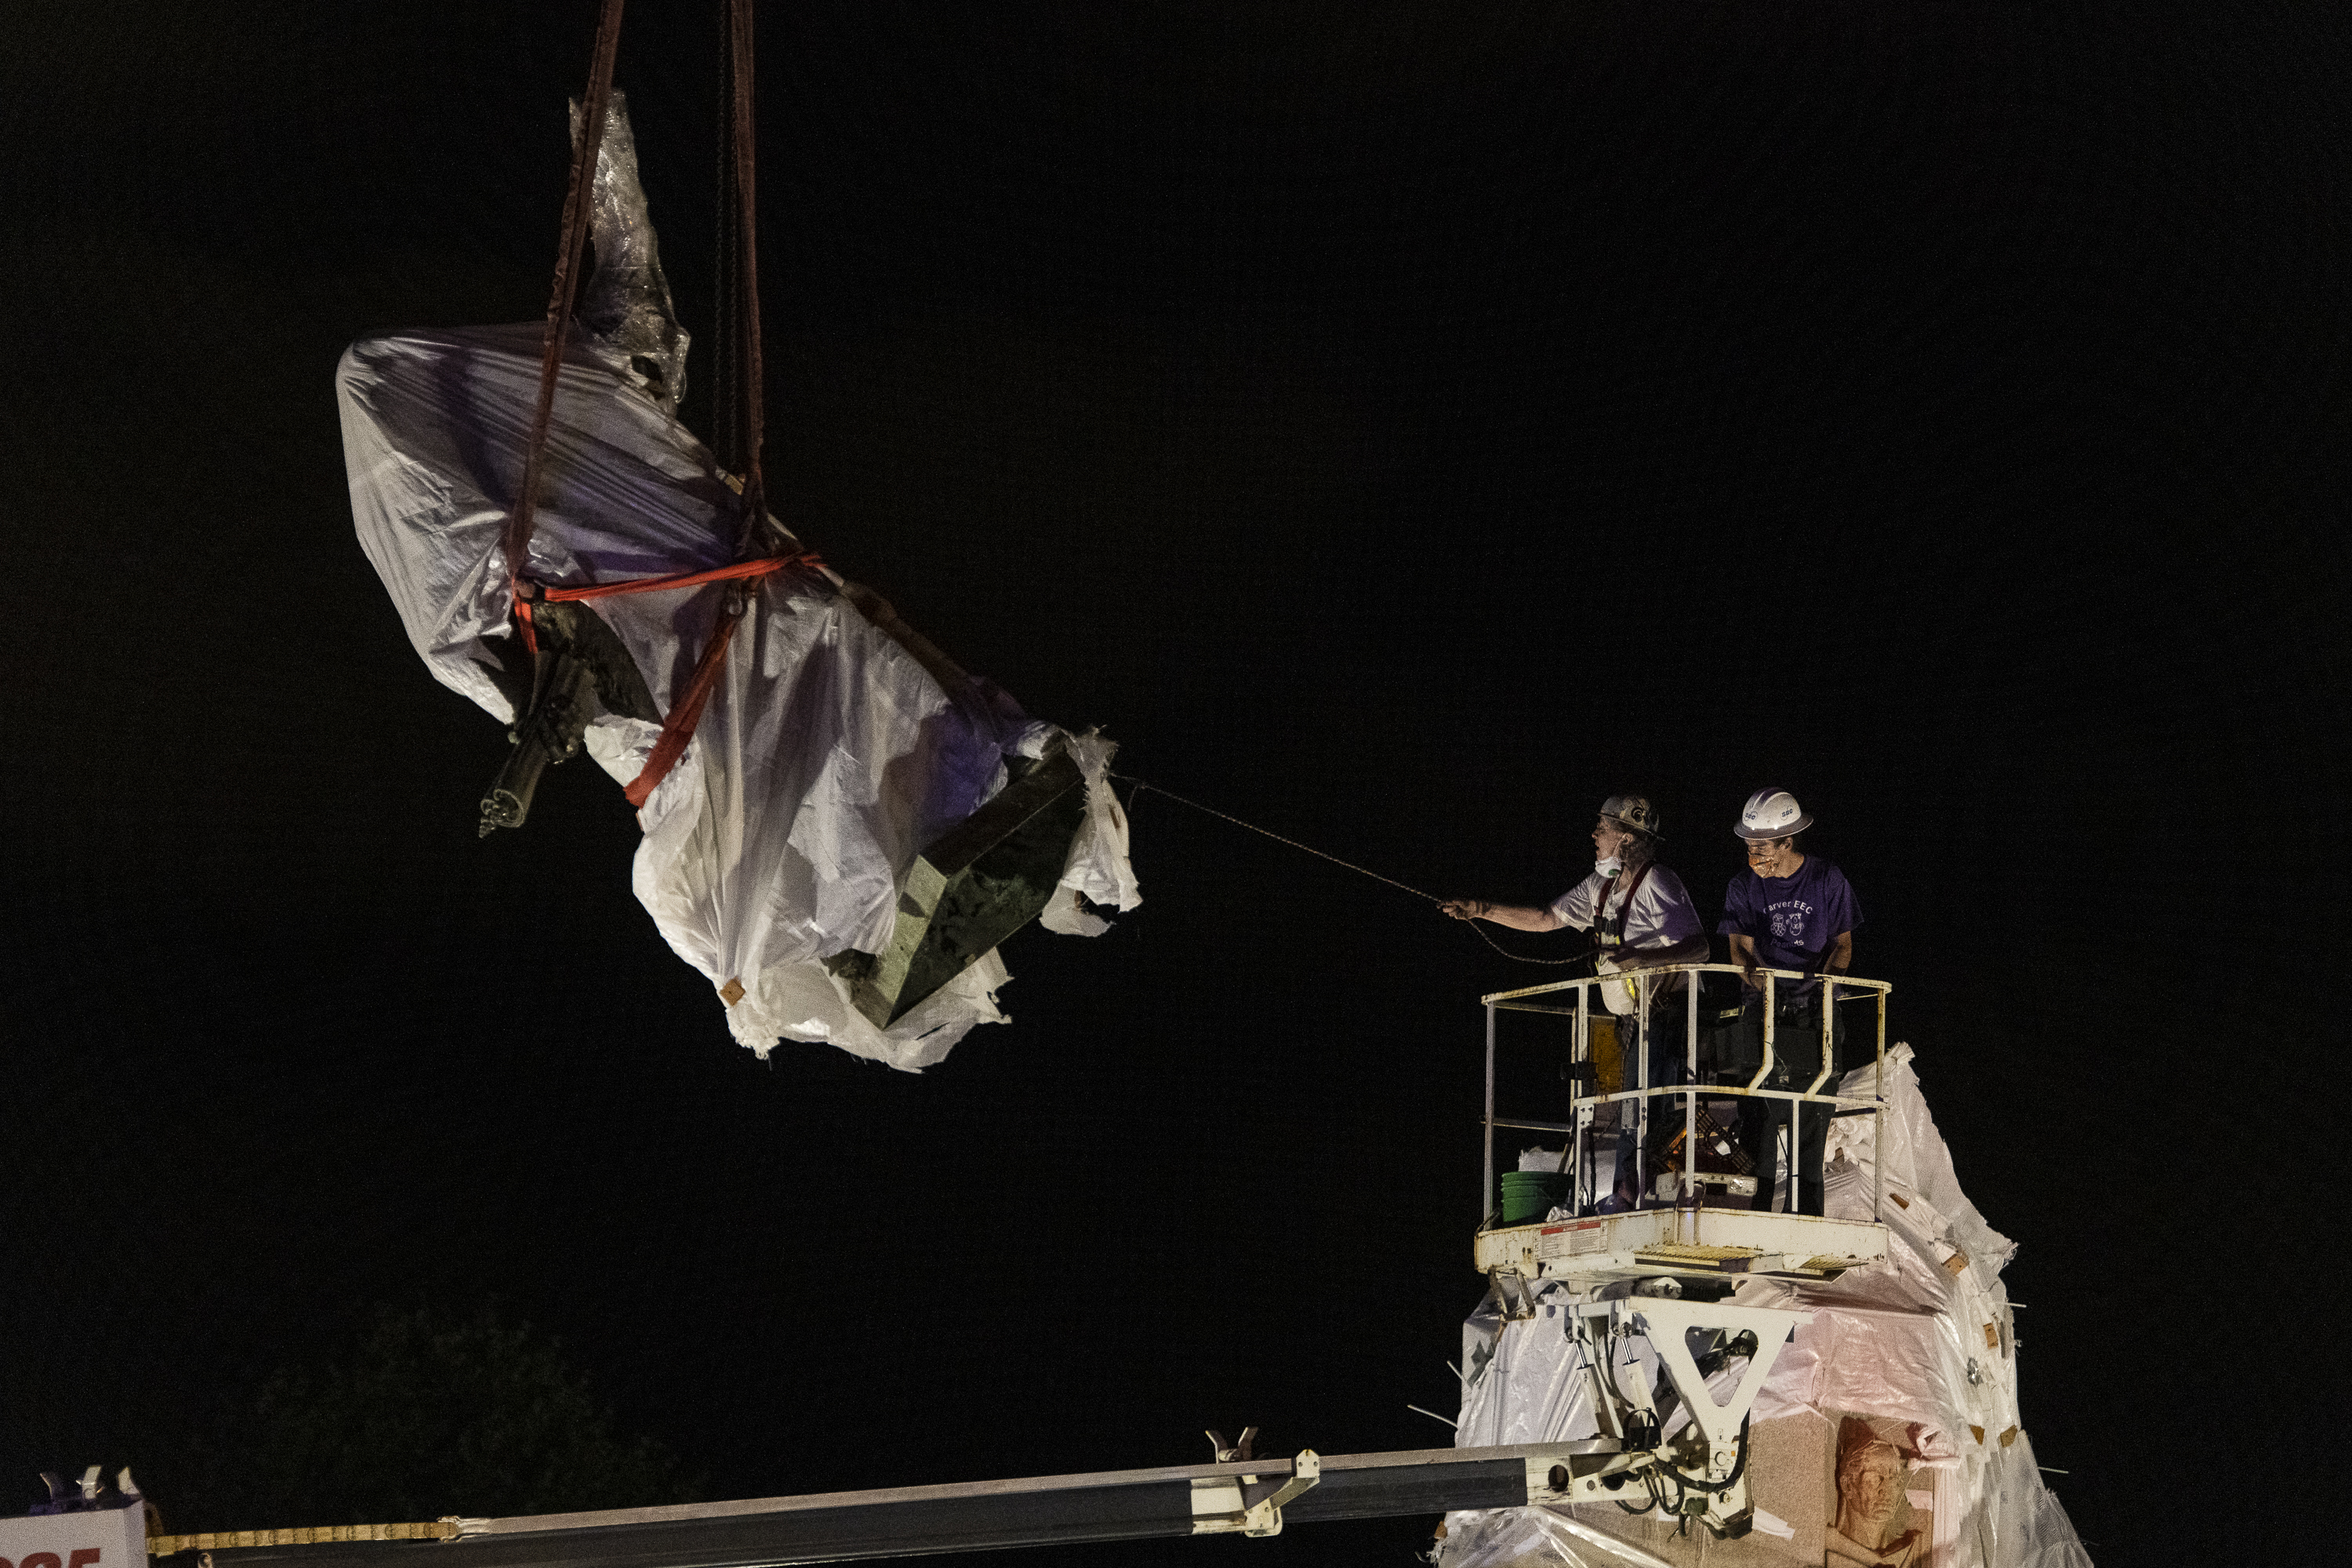 City crews removed the Christopher Columbus statue from its pedestal in Grant Park last month.